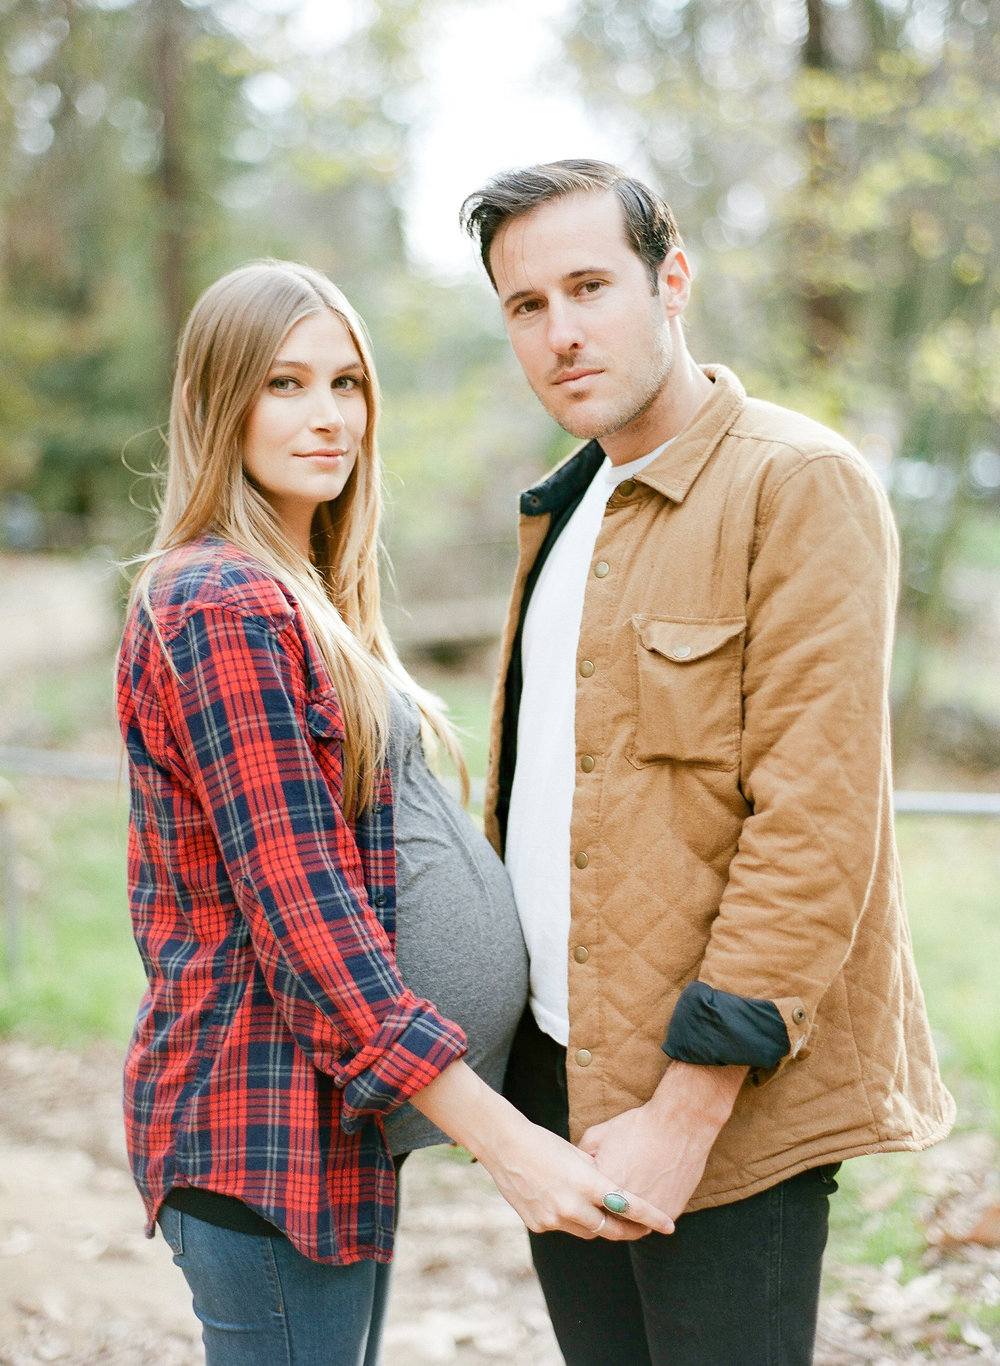 Chrissy & David Maternity Session-4.jpg